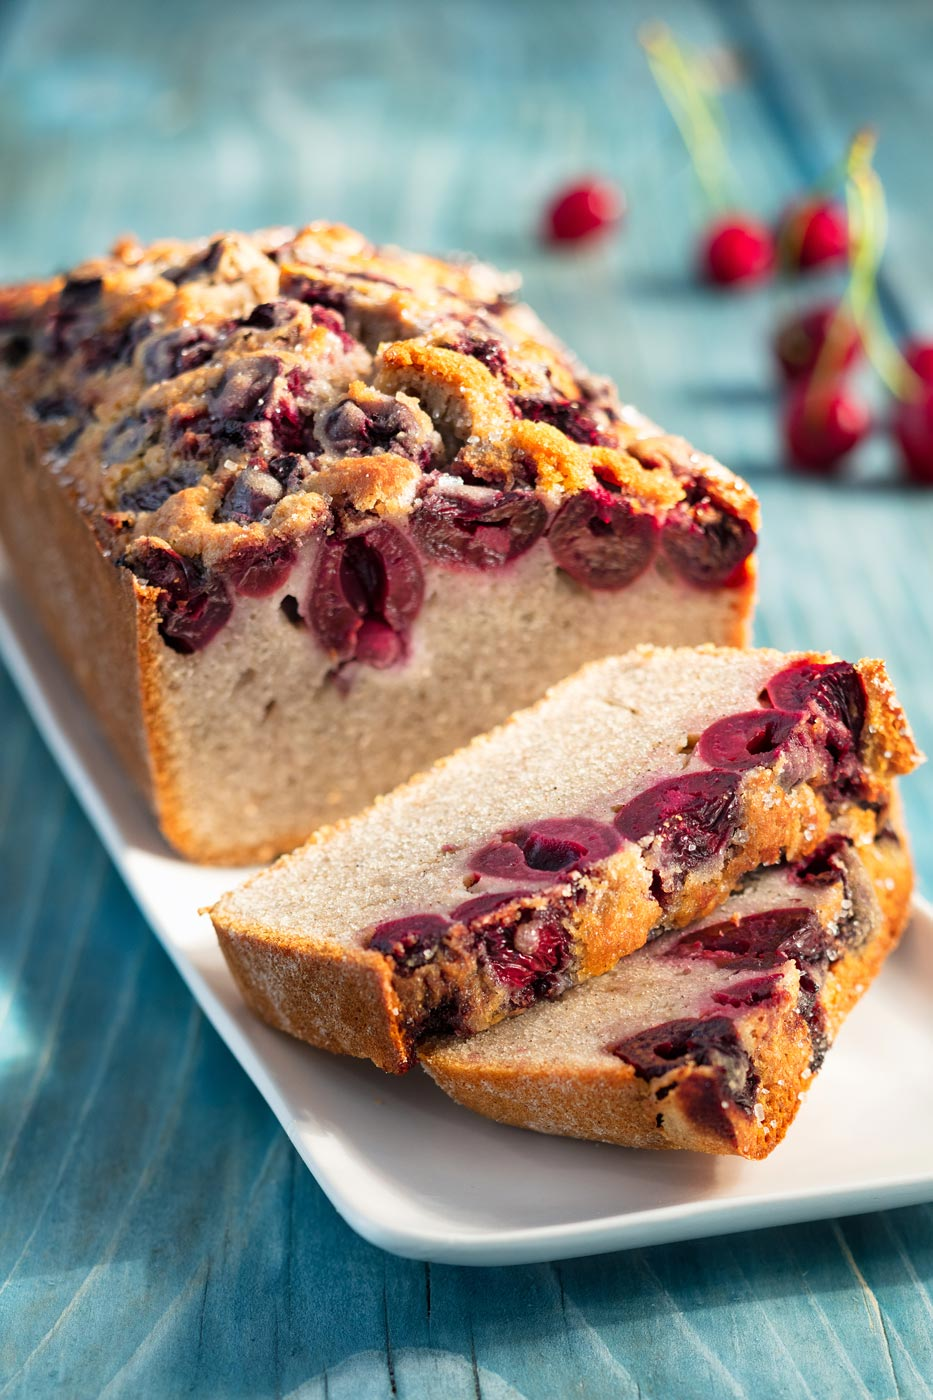 Recipe image of cherry cake